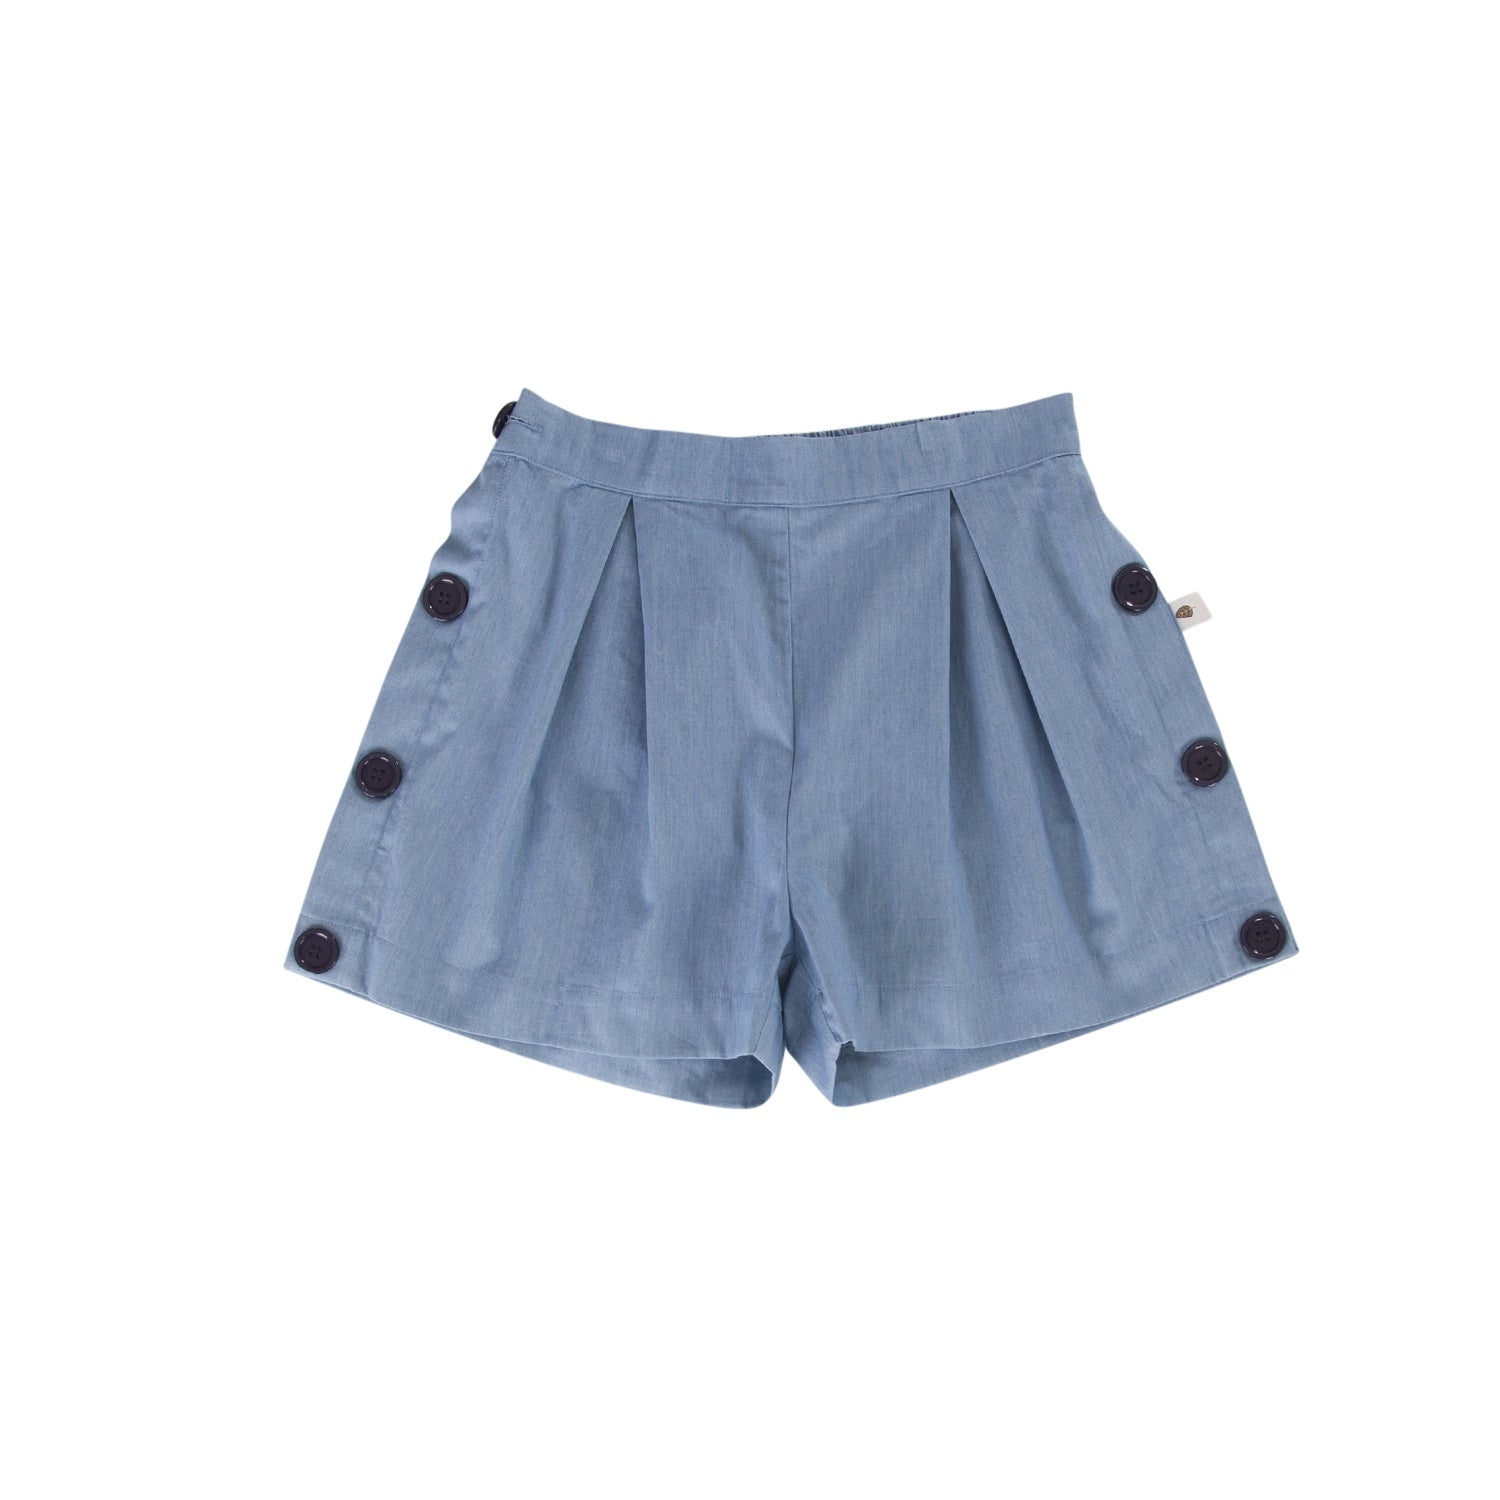 Ocean Shorts Chambray - by Peggy